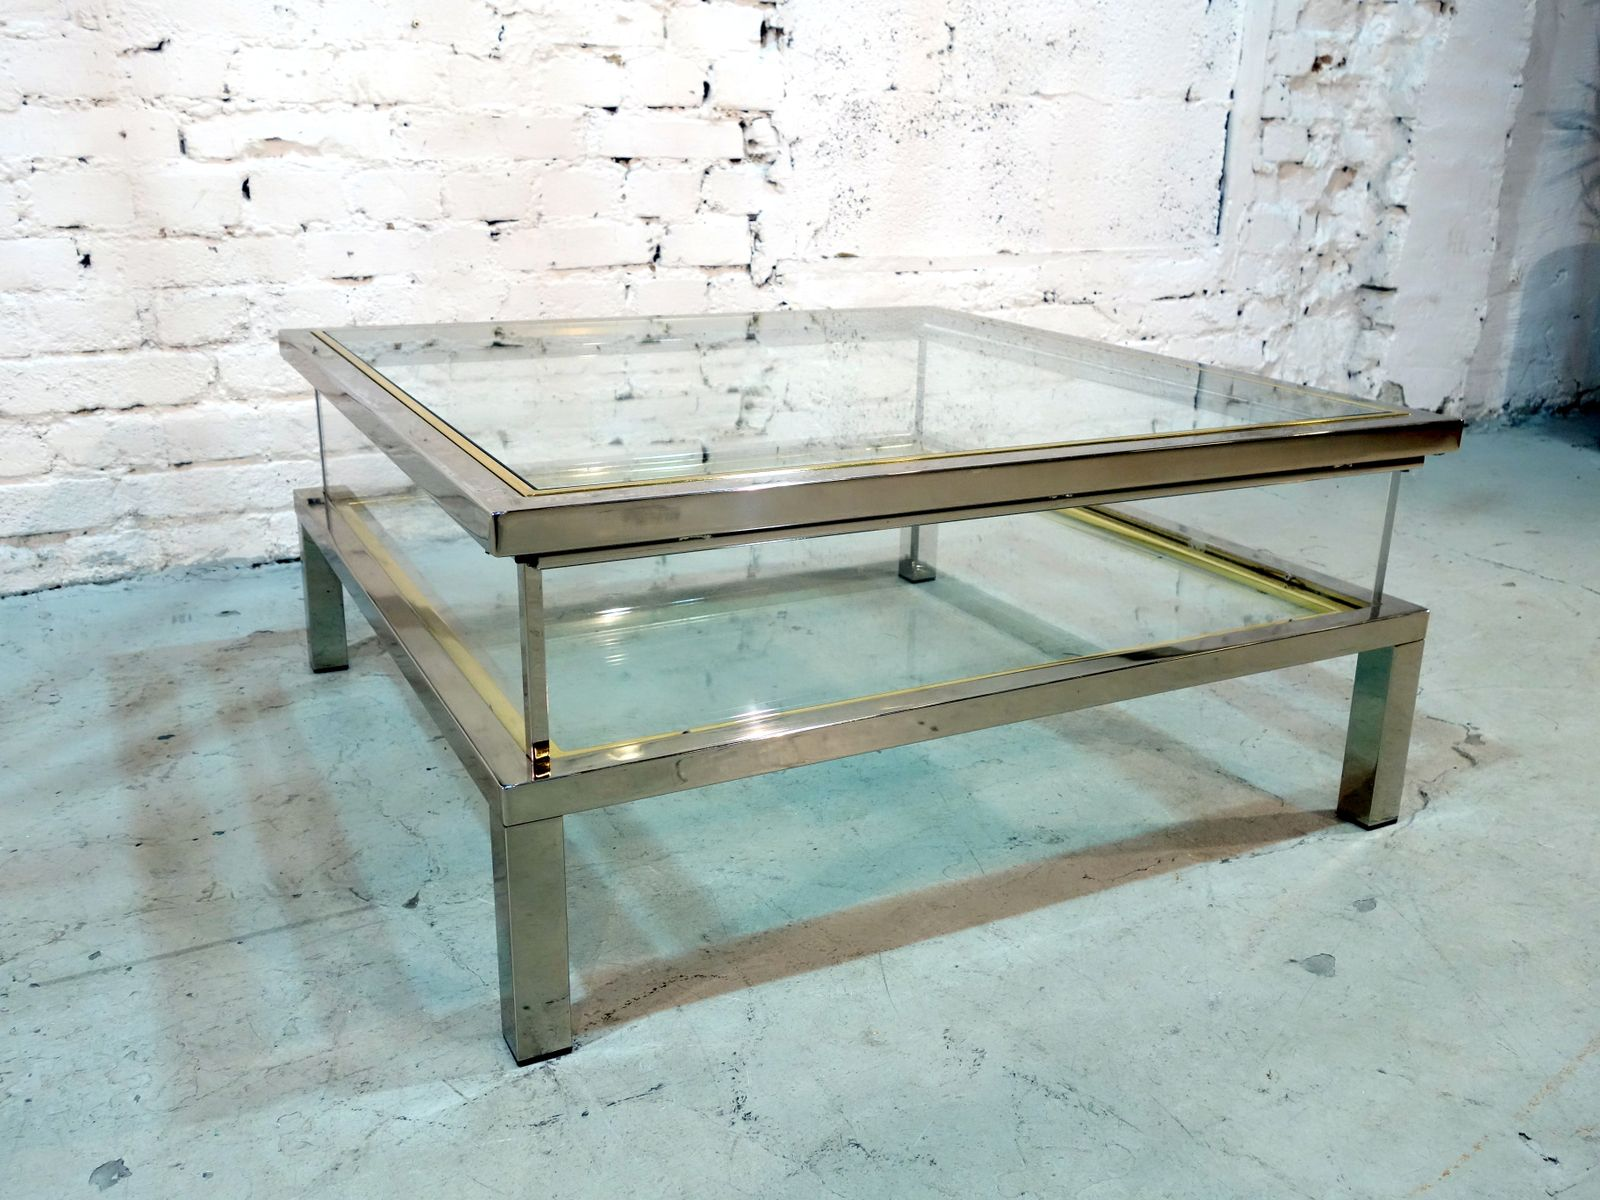 French Sliding Top Coffee Table from Maison Jansen 1970s for sale